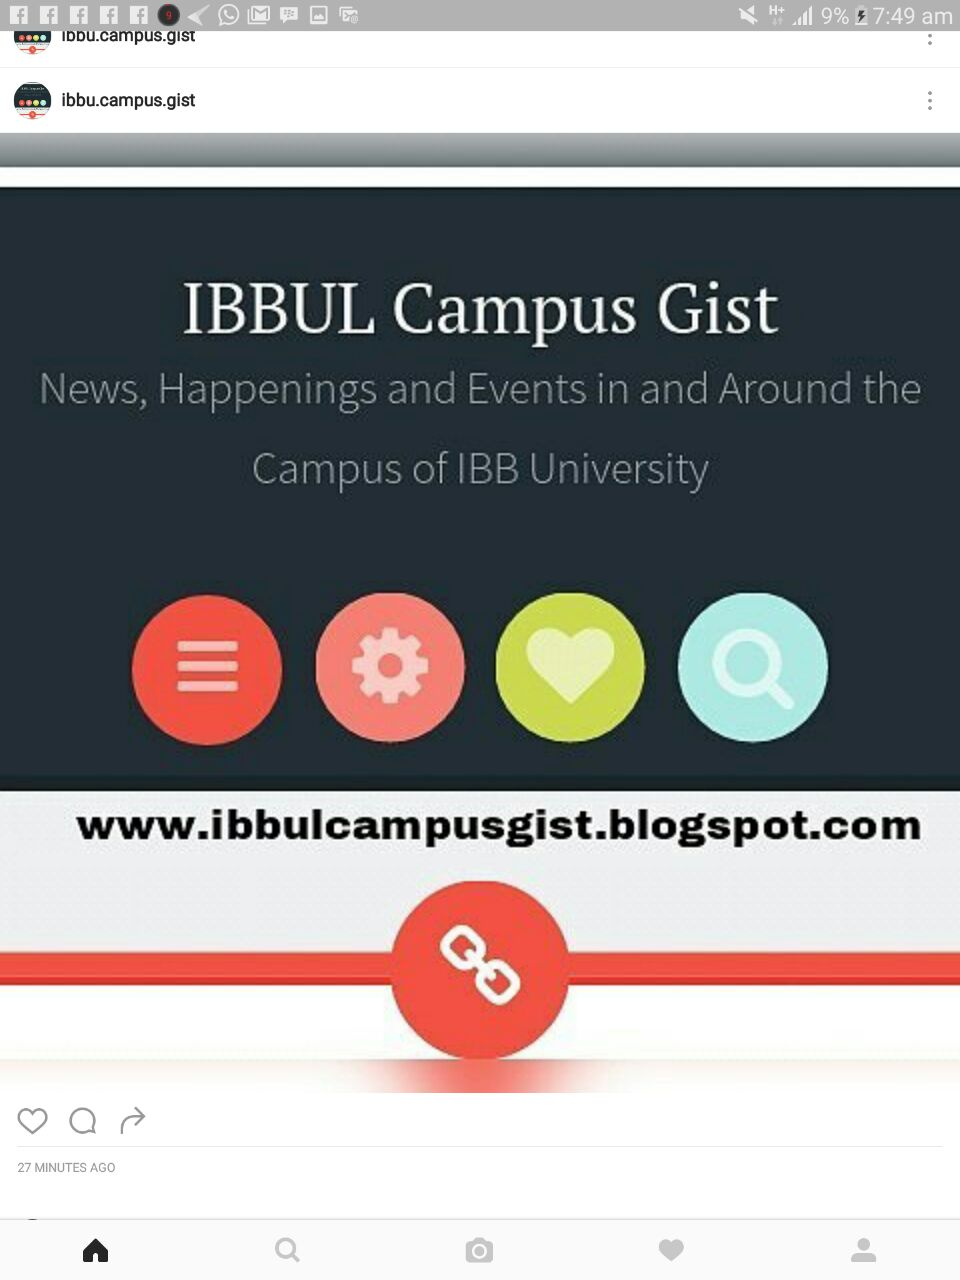 October 2016 ~ IBBUL Campus Gist